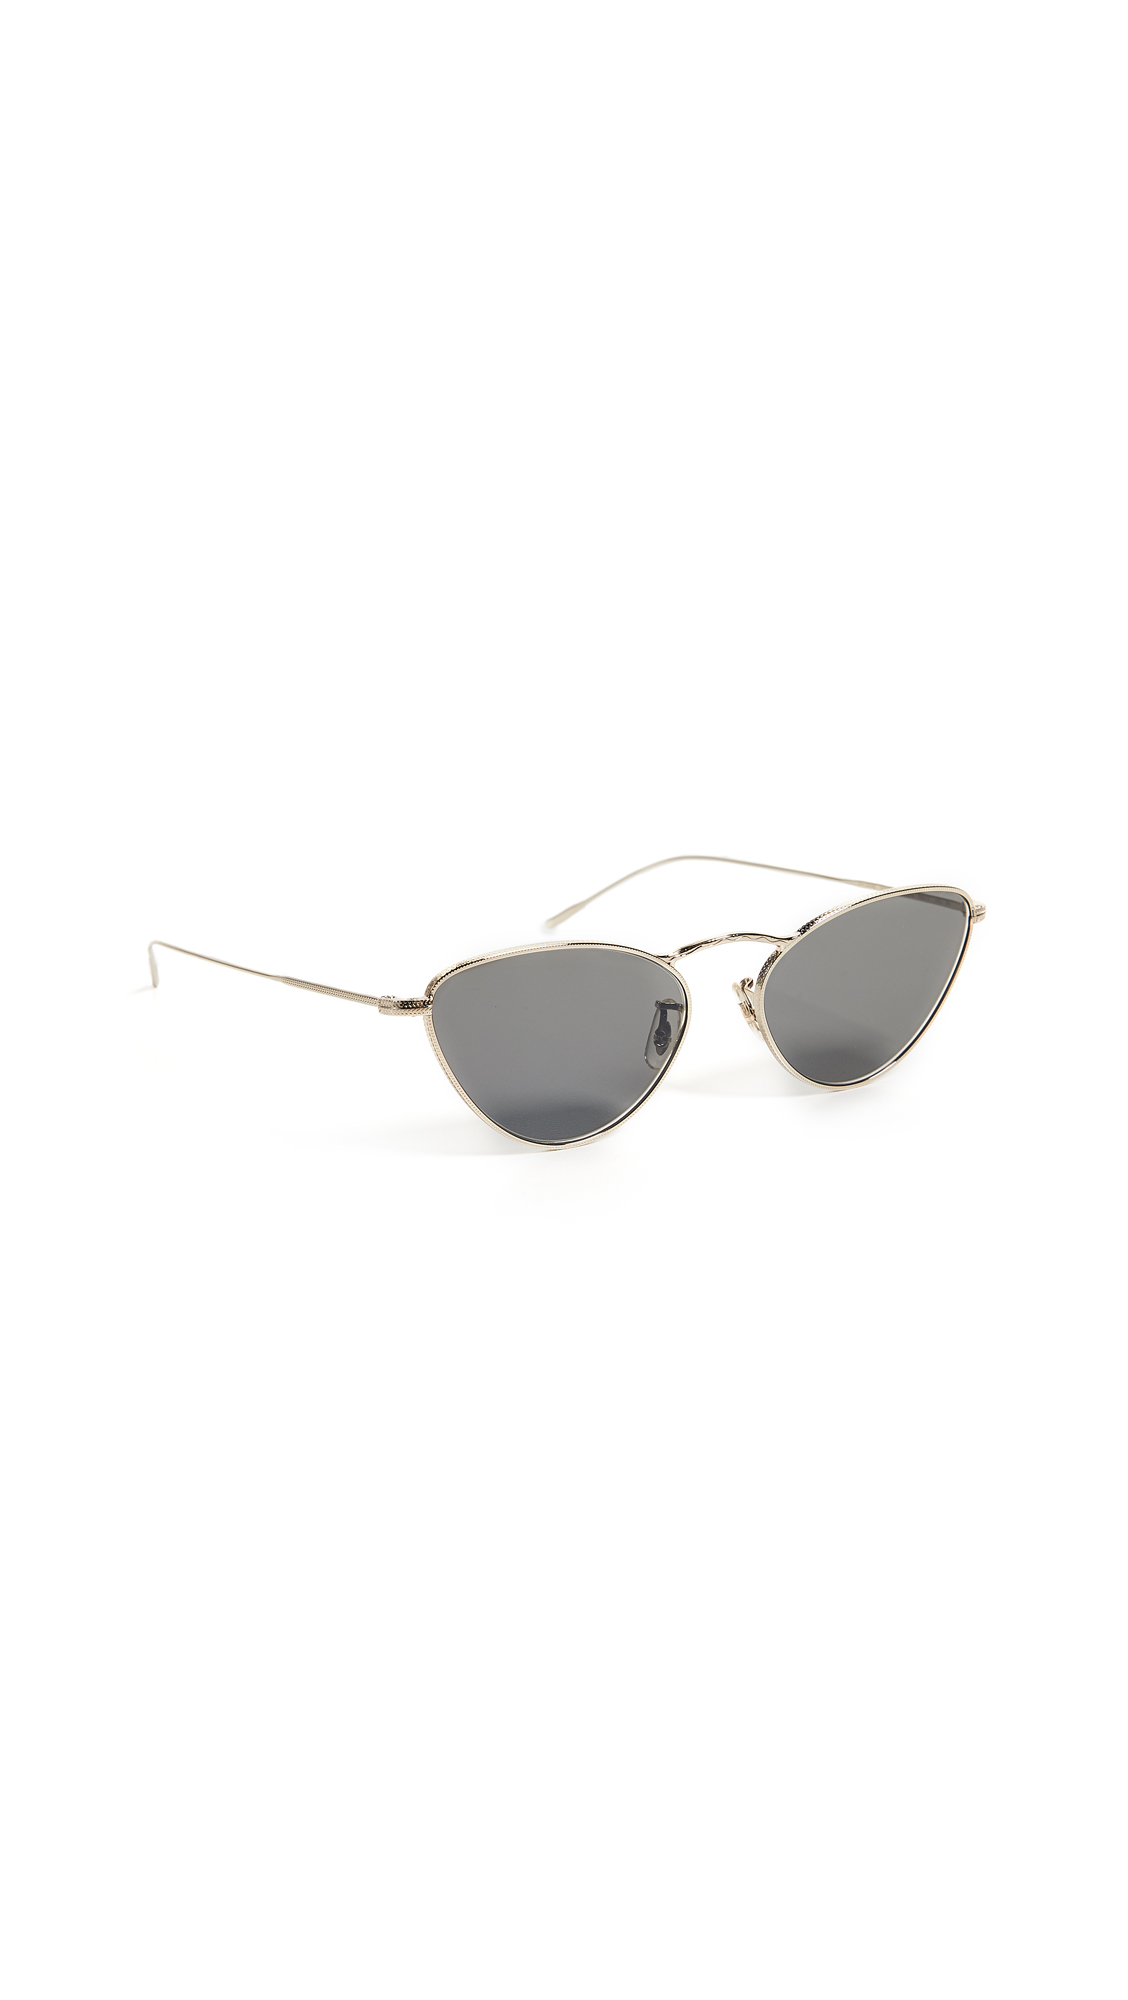 Oliver Peoples Eyewear Lelaina Sunglasses In Gold/Carbon Grey